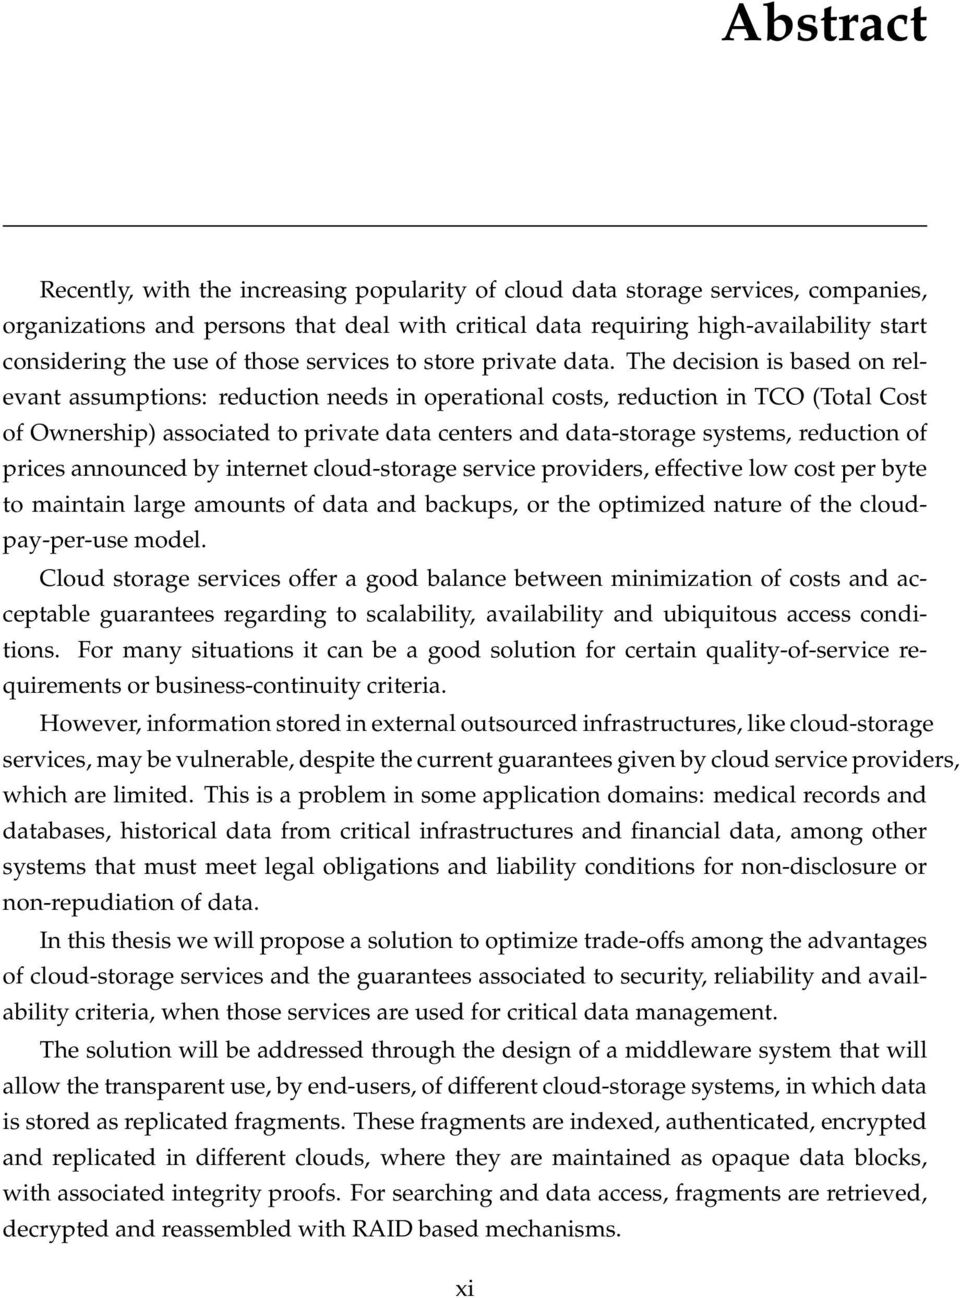 The decision is based on relevant assumptions: reduction needs in operational costs, reduction in TCO (Total Cost of Ownership) associated to private data centers and data-storage systems, reduction